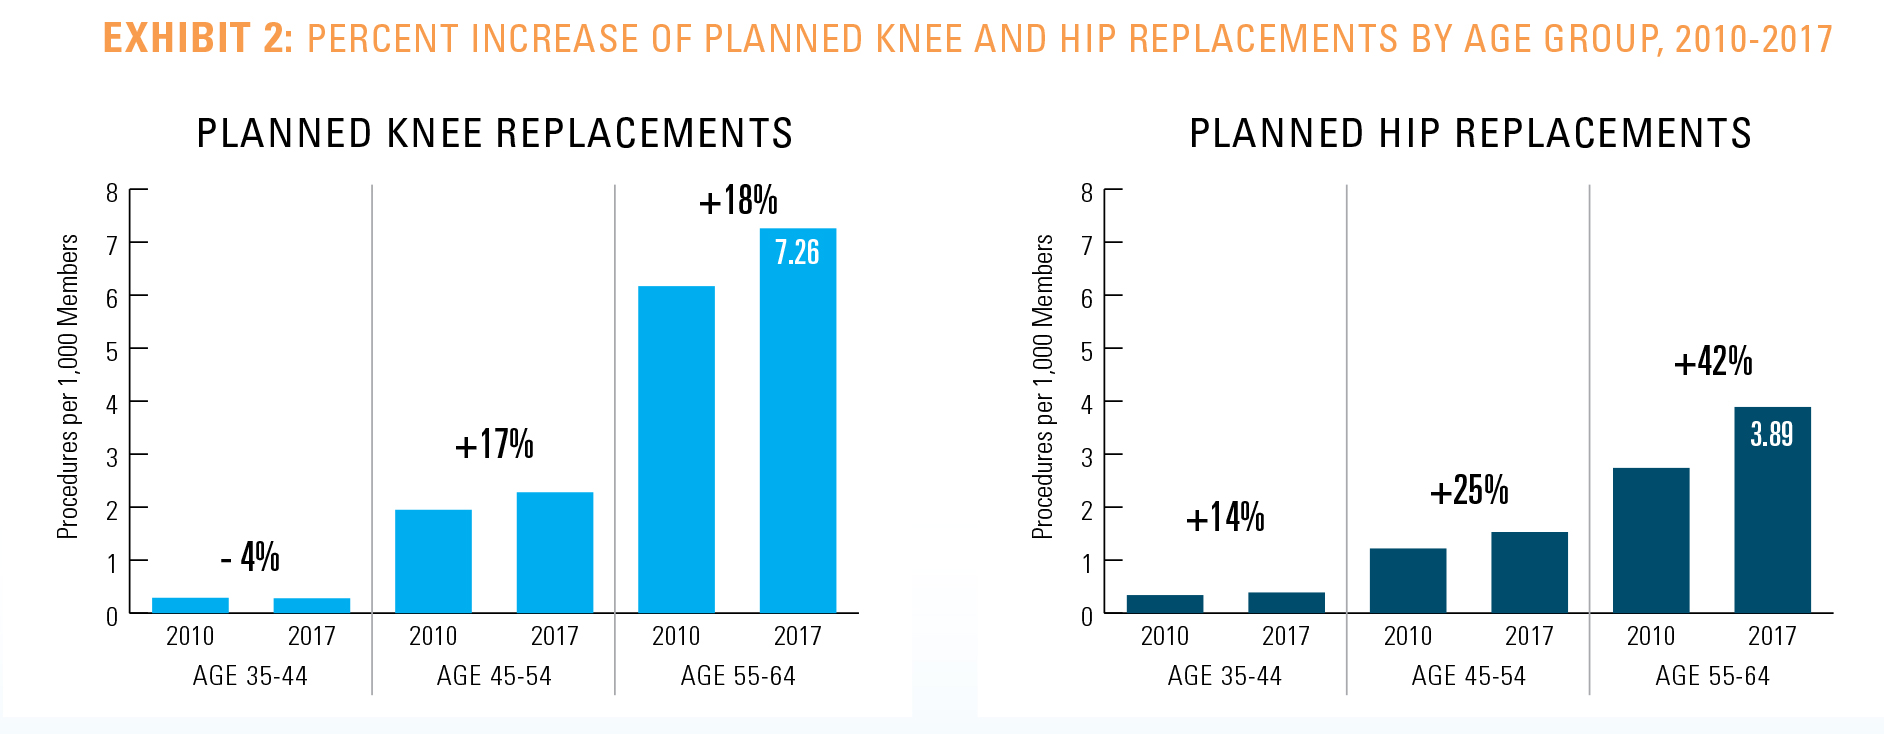 EXHIBIT 2: PERCENT INCREASE OF PLANNED KNEE AND HIP REPLACEMENTS BY AGE GROUP, 2010-2017